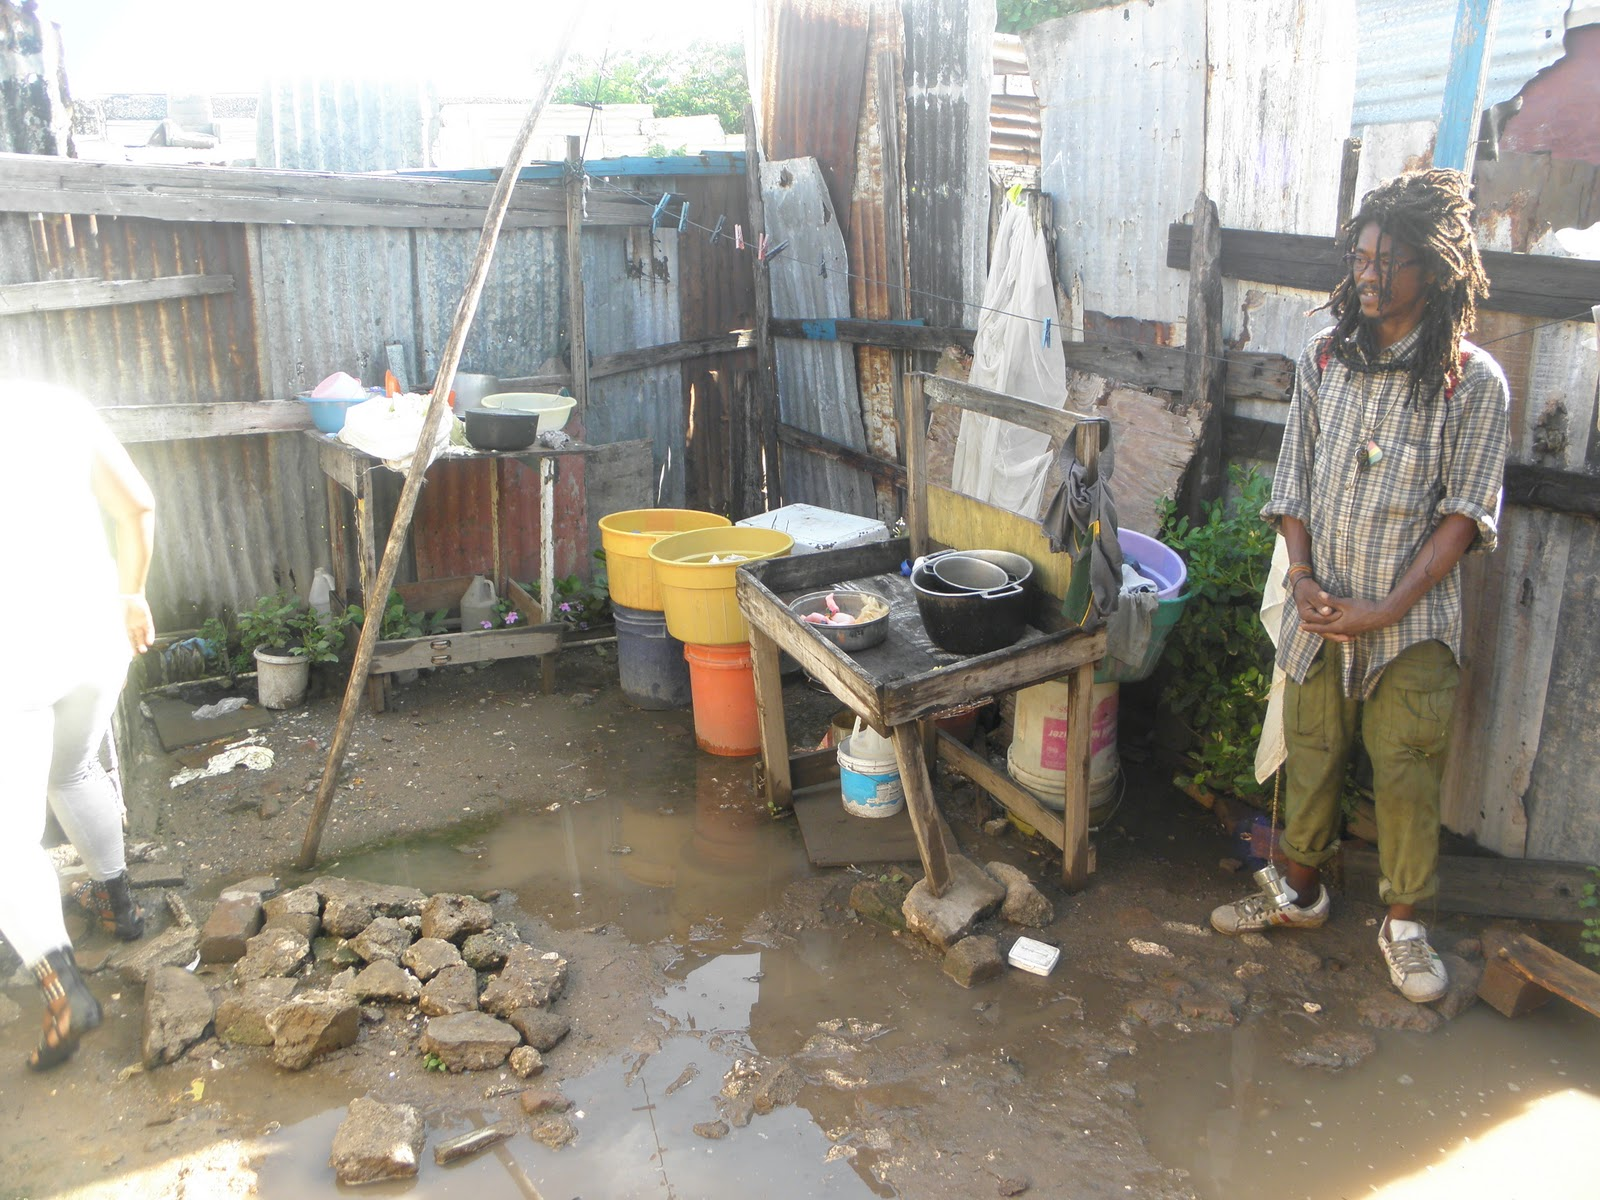 Slum and squatters resettlement in asean countries